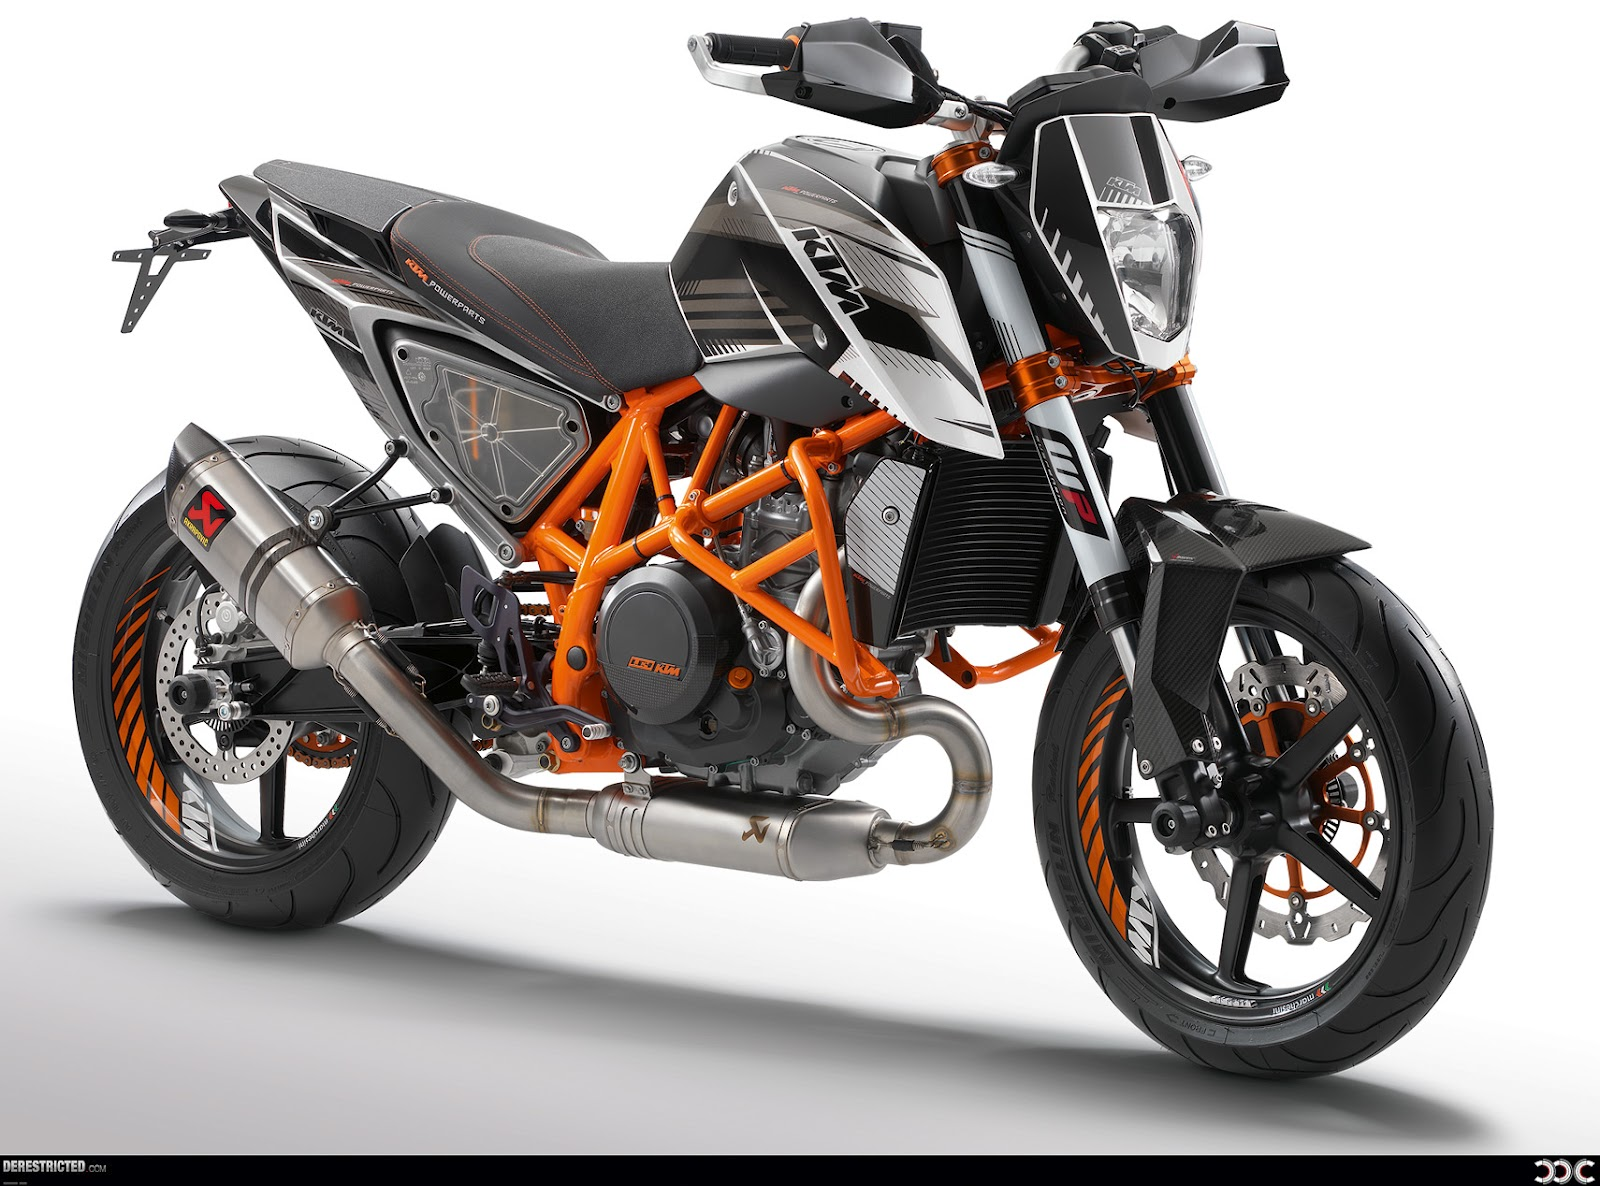 Ktm 690 smc r wallpapers for desktop - Http 4 Bp Blogspot Com Vgkf23fvmlo Udr4kxgqthi